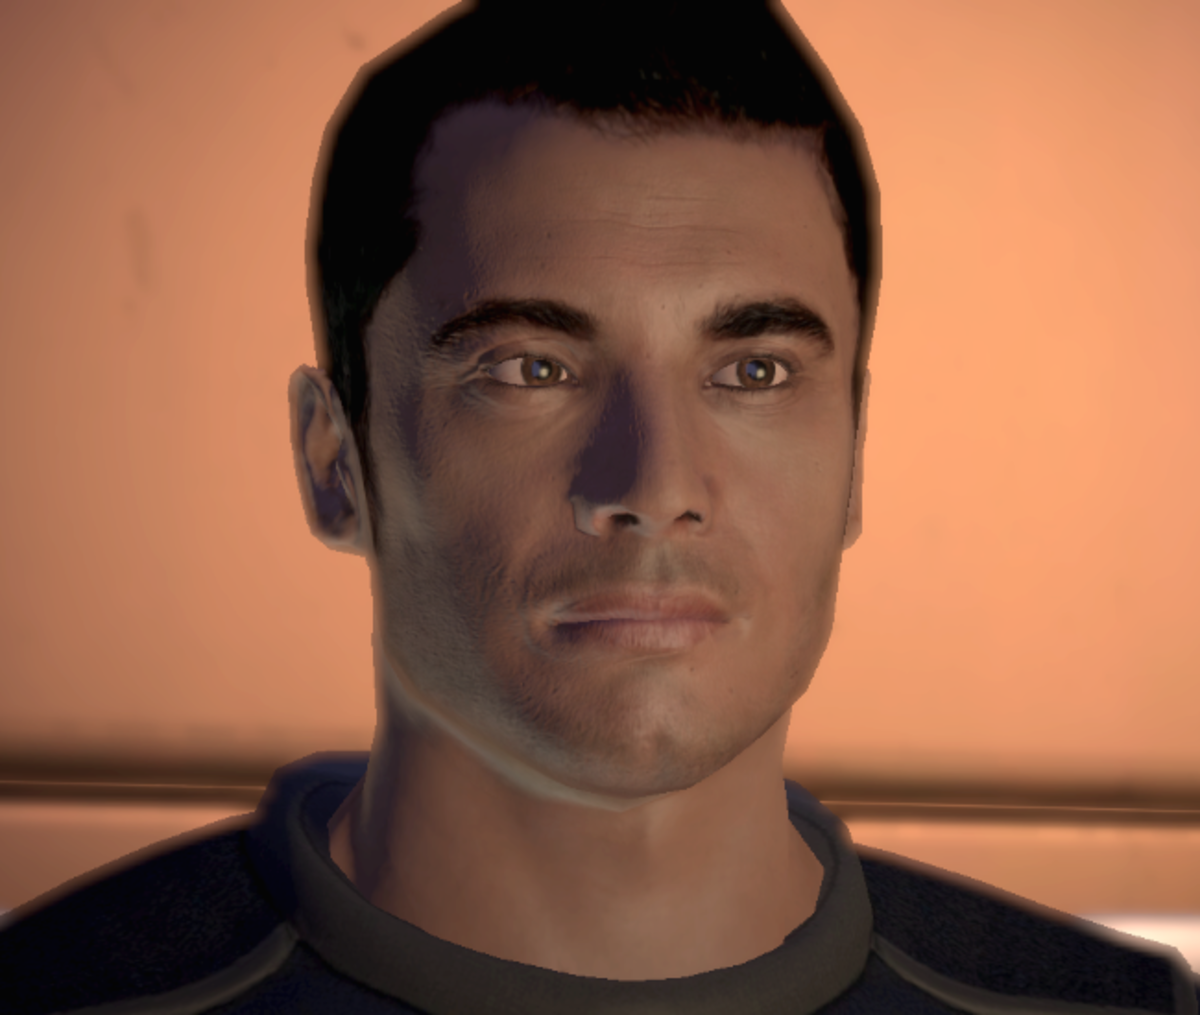 Kaidan as he appears in the first Mass Effect.